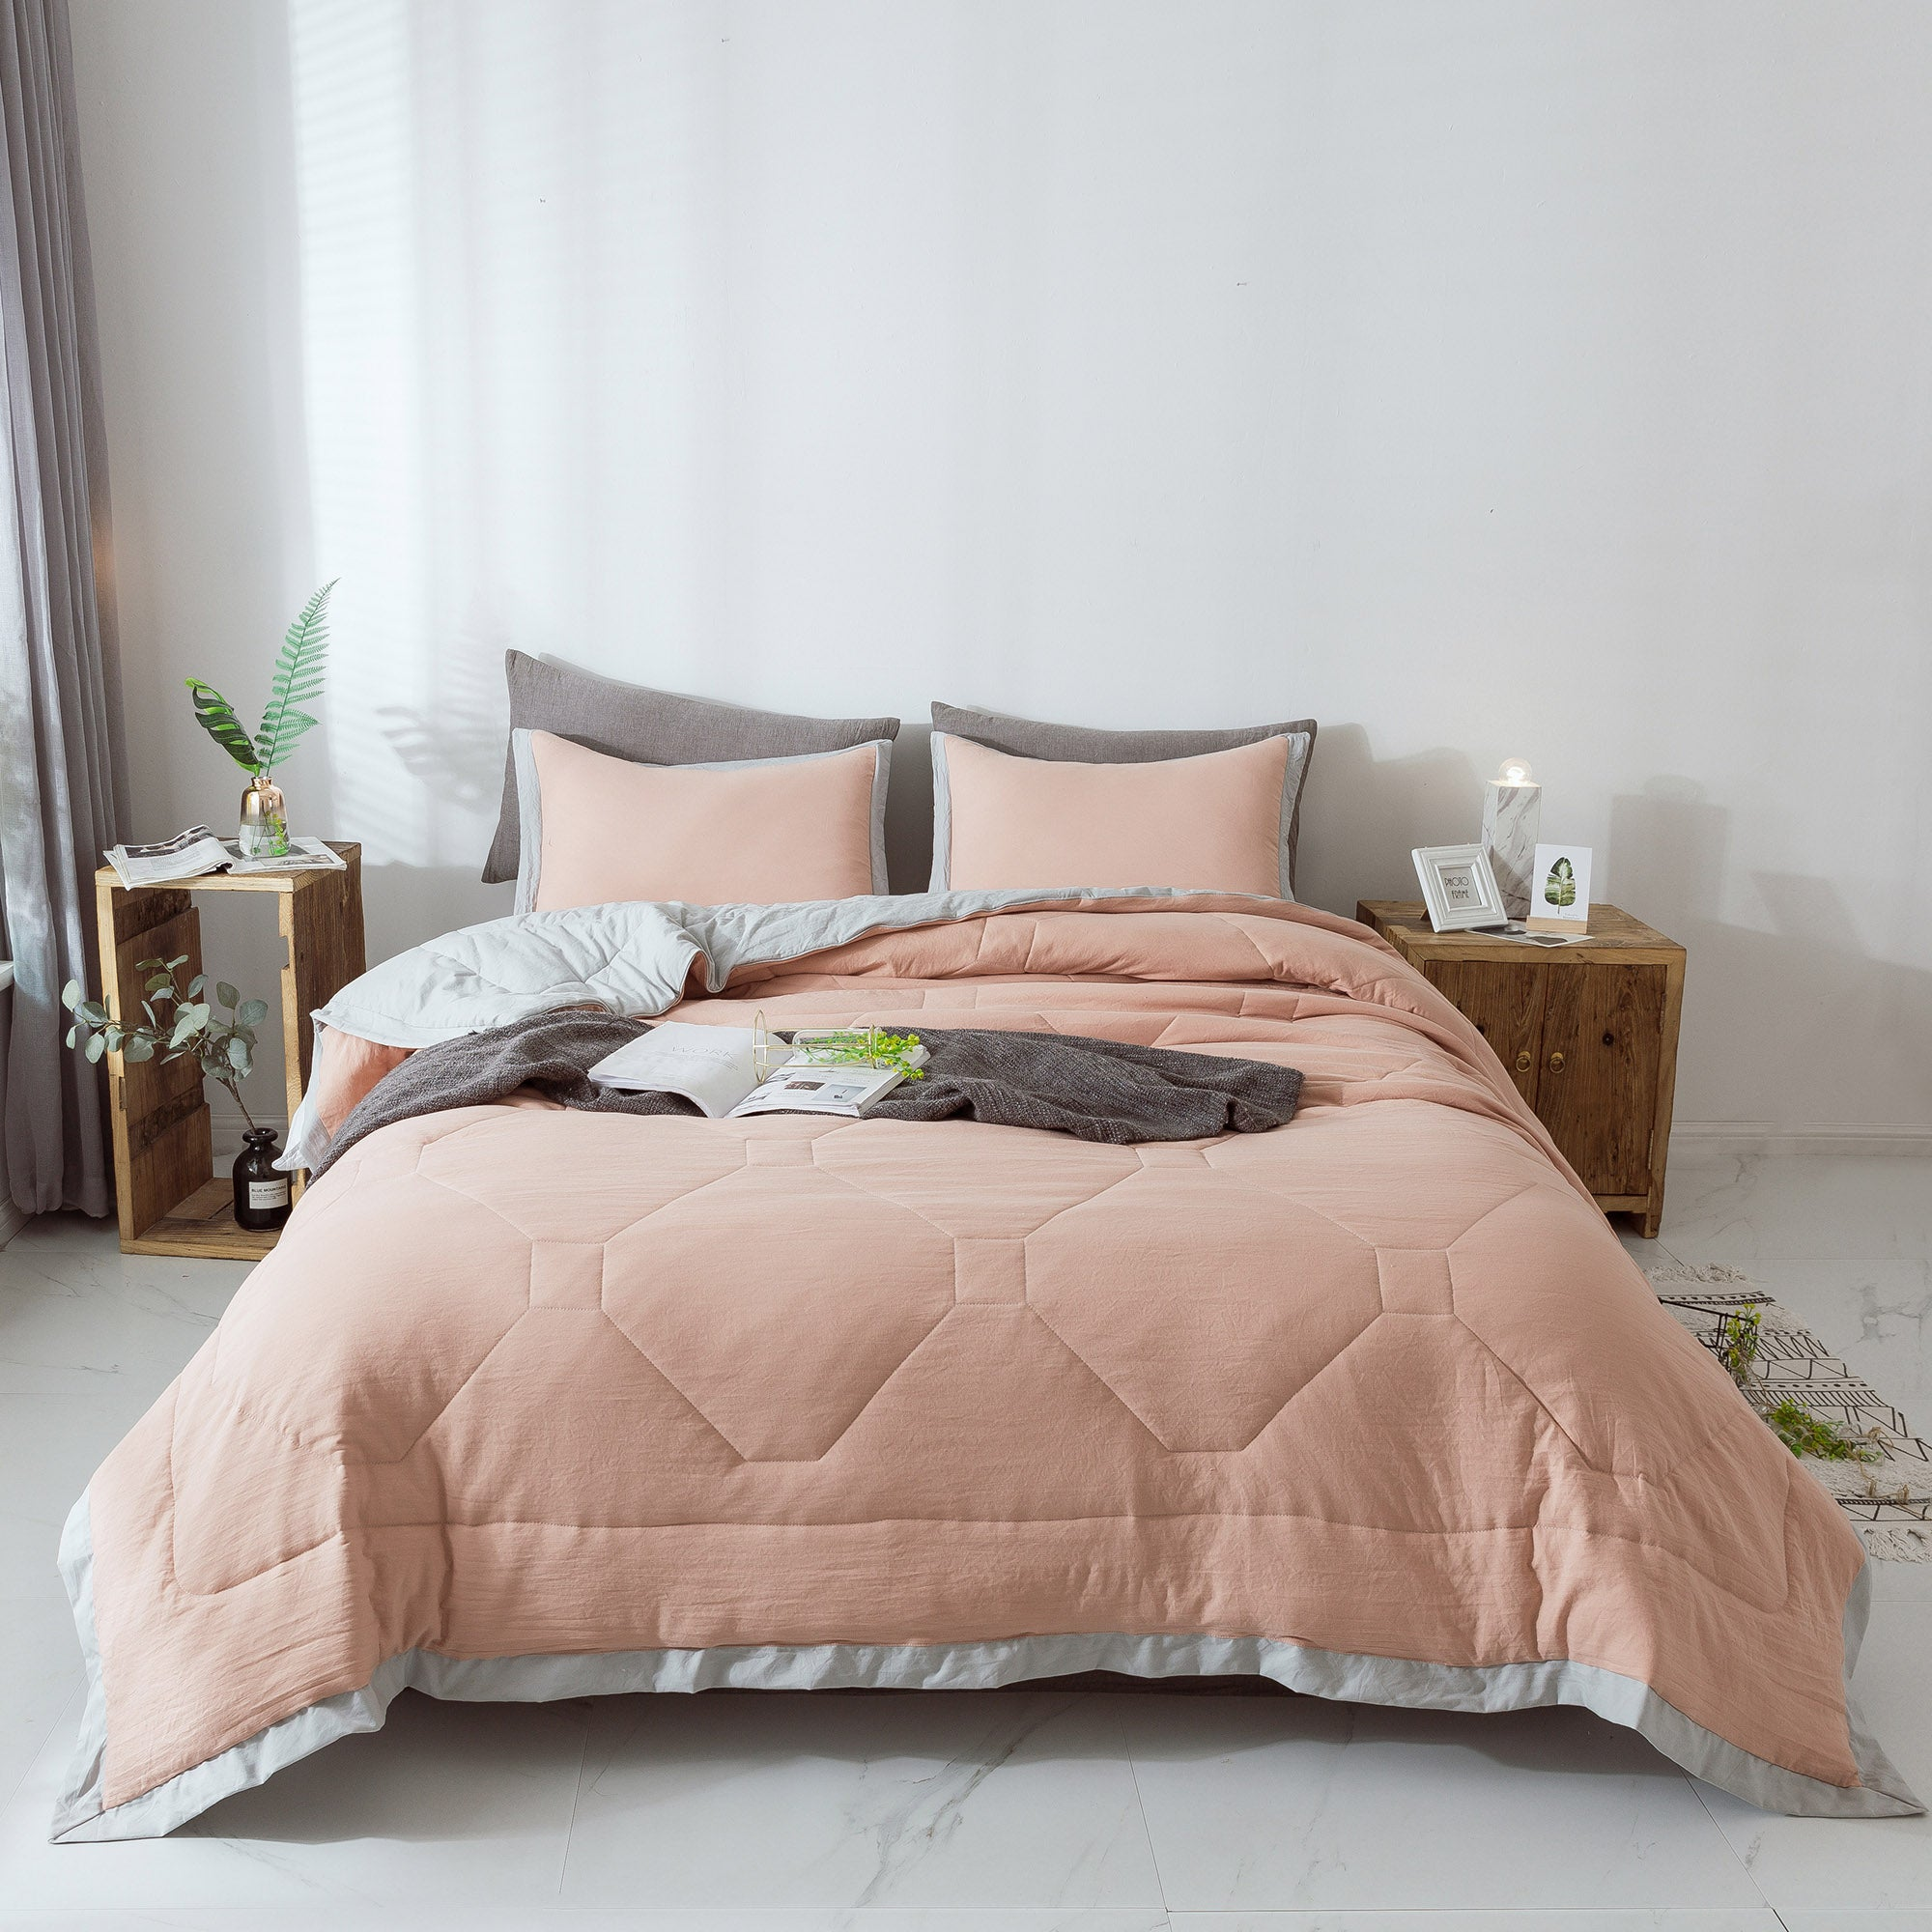 KASENTEX All Season Comforter Set with Stylish Ruffled Edge Trim Nostalgic Design with Matching Shams